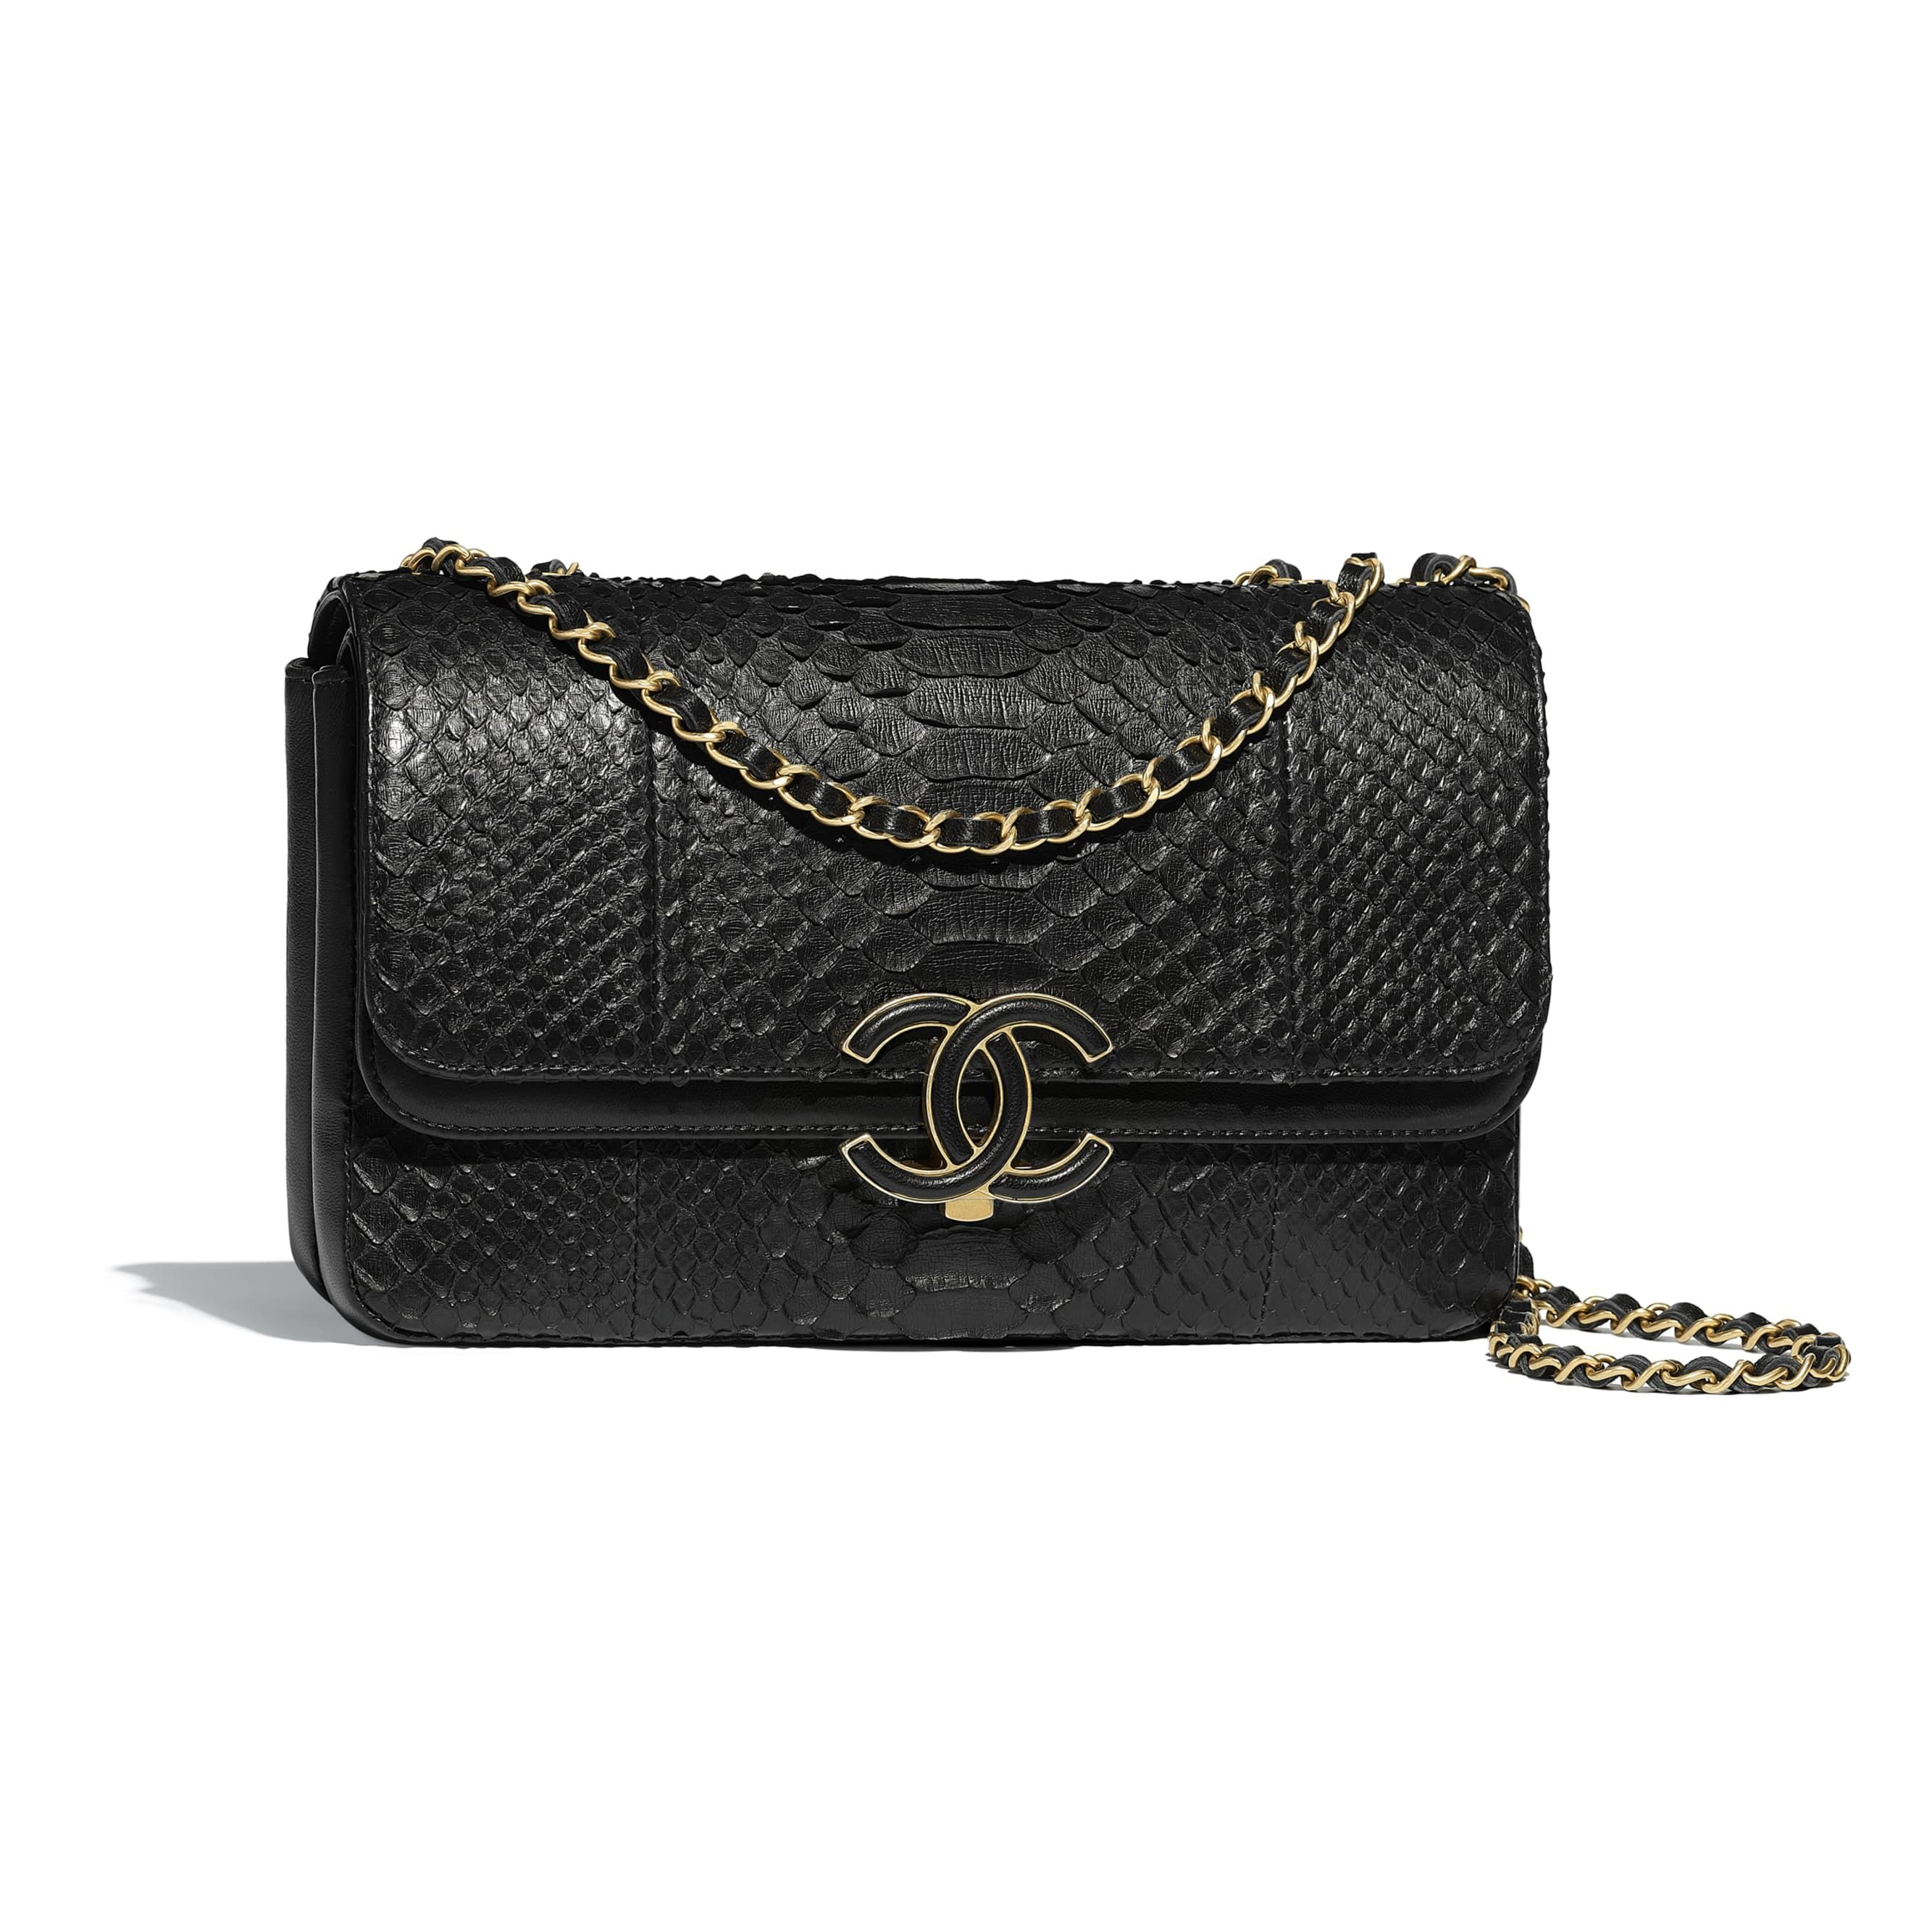 00397eaa7b Python, Lambskin & Gold-Tone Metal Black Flap Bag | CHANEL | Fashion ...